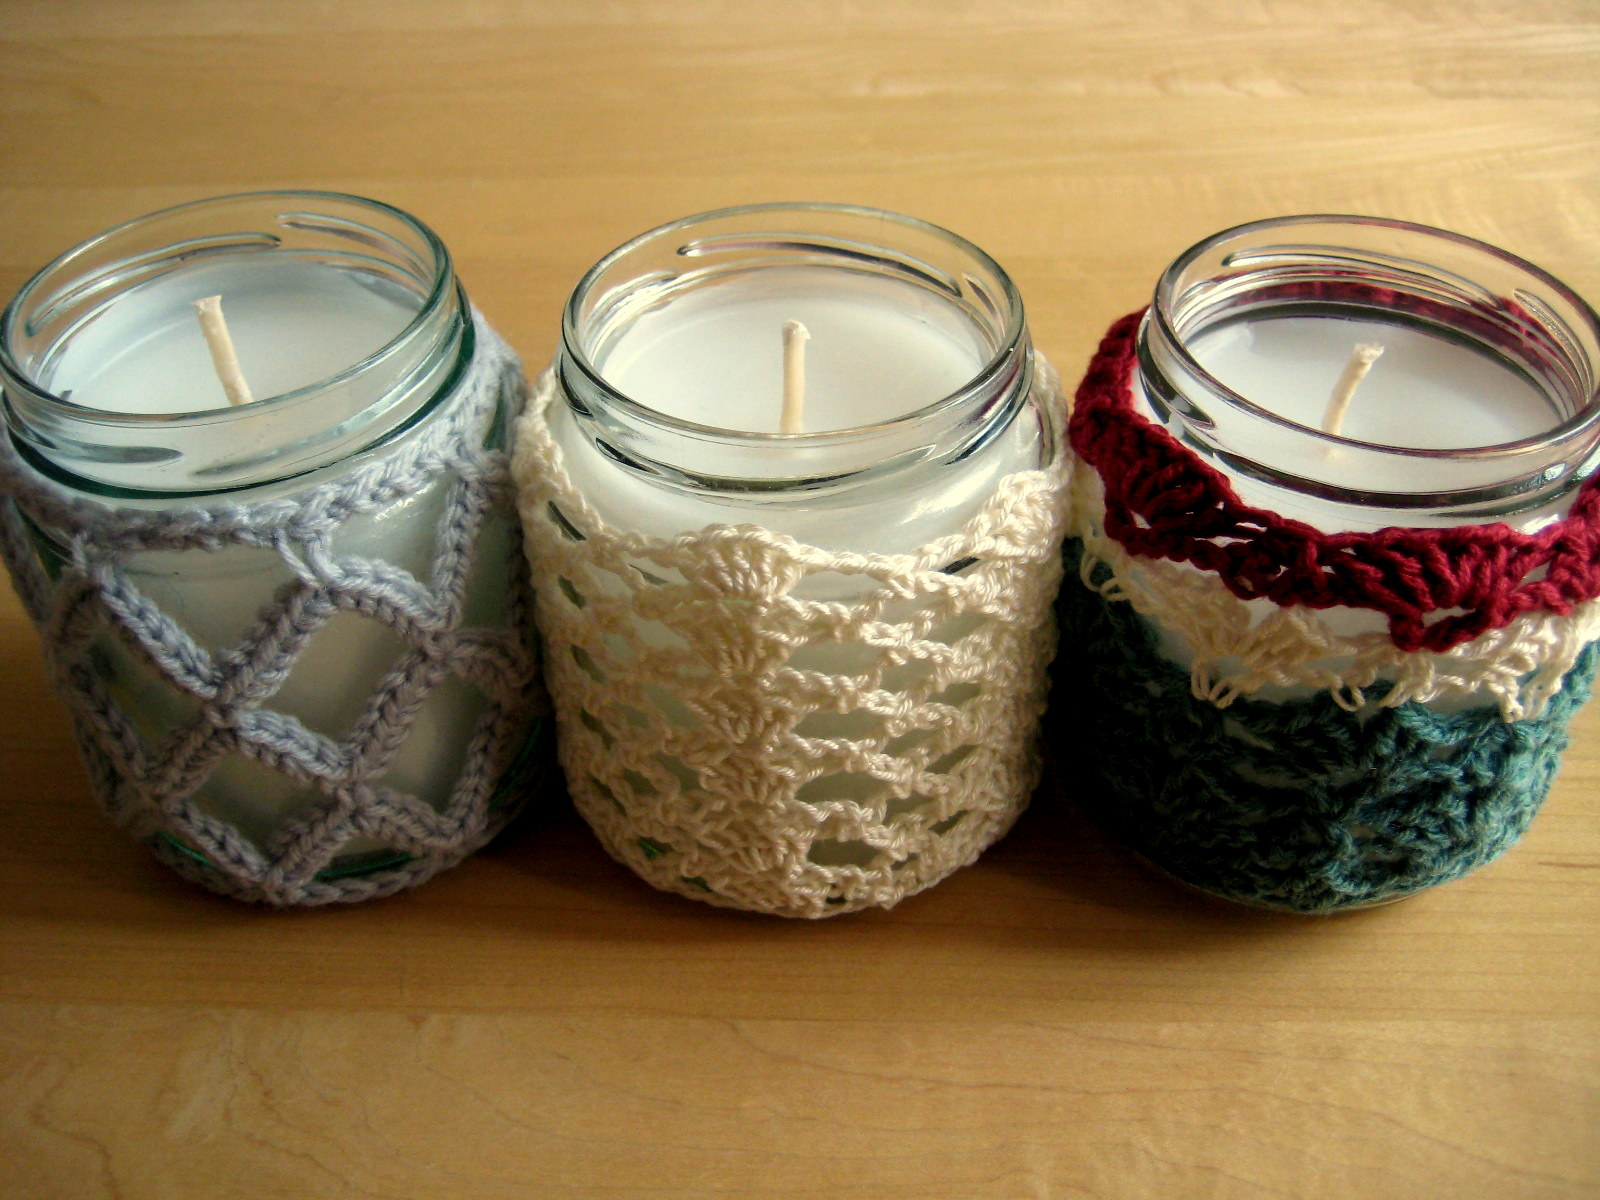 Crochet Jar Cover IIILattice Effect Make My Day Creative